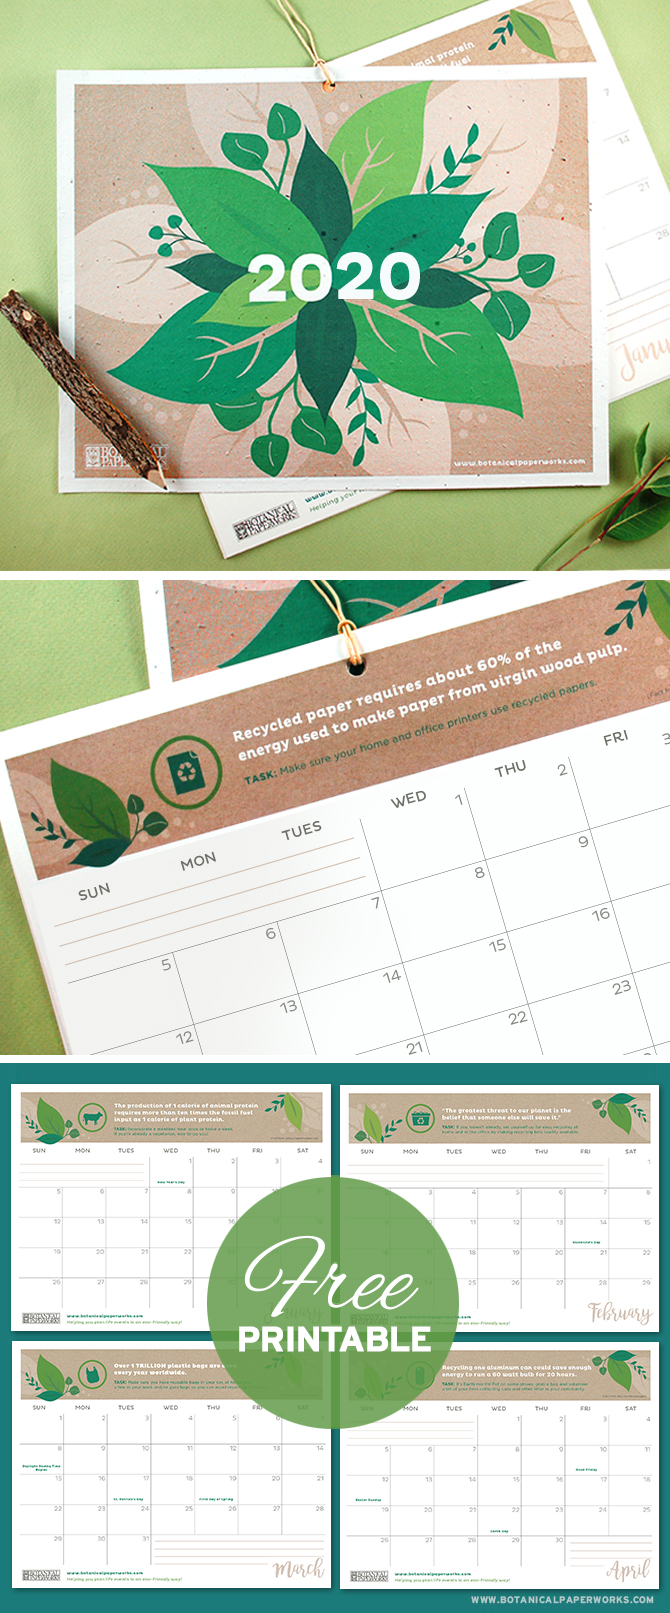 With facts, quotes and tips to help you live a more eco-friendly life, this vibrant Free Printable 2019 Eco Tips Calendar is perfect for those who want to plan a greener future. Simply download and print the PDF at home!